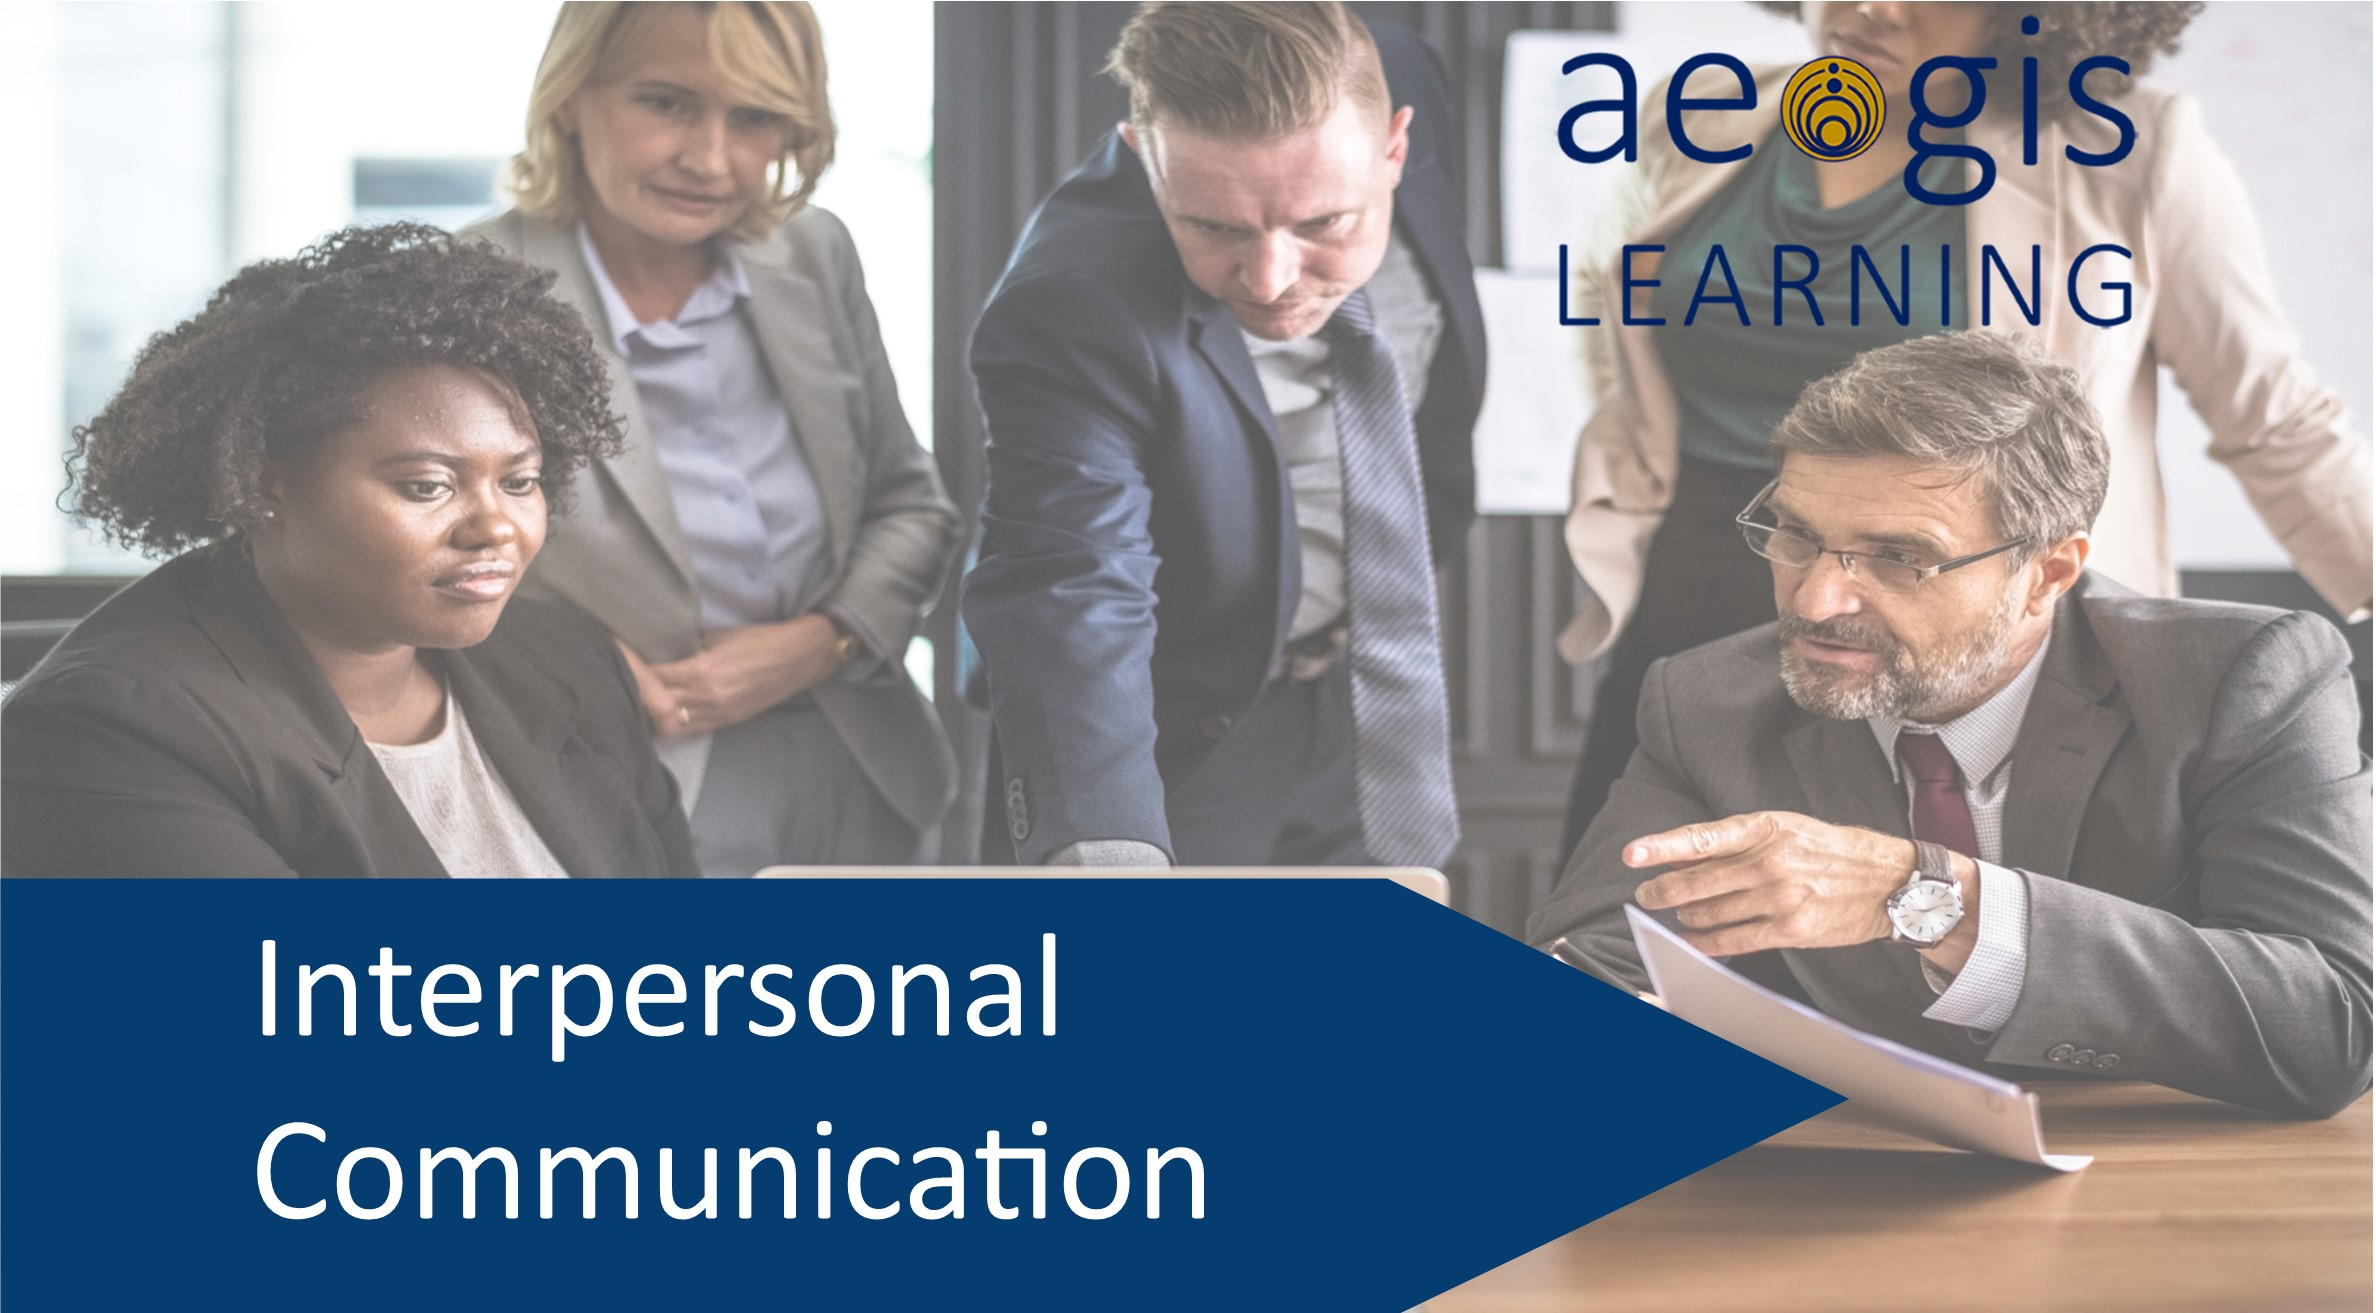 Interpersonal Communications Online Learning